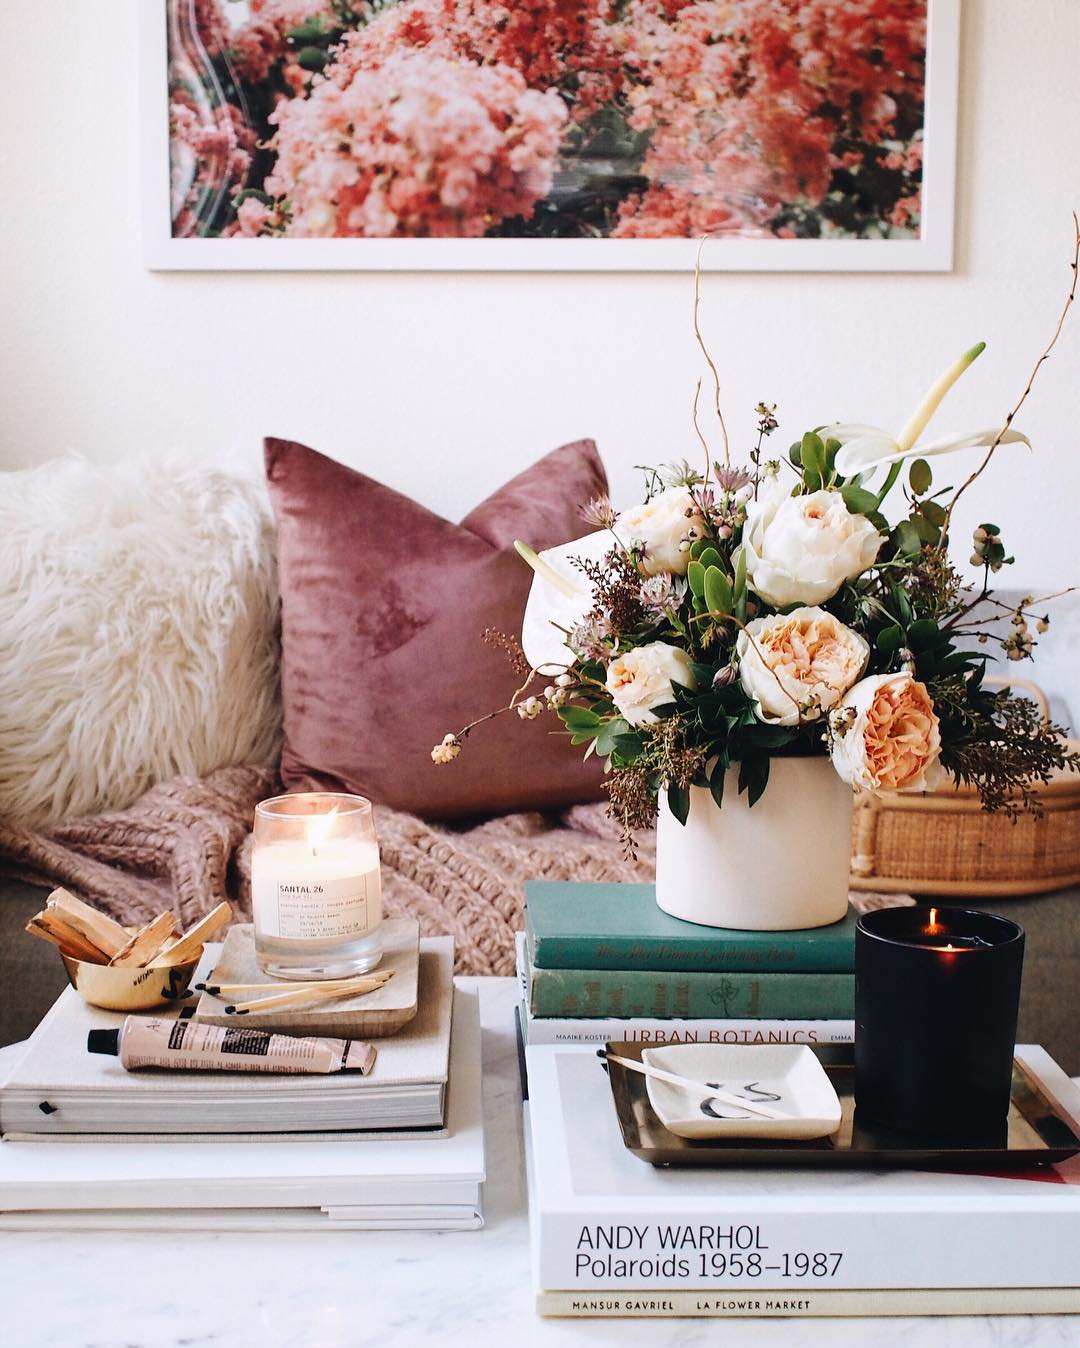 Studio Apartment Ideas: A coffee table can be the perfect stage for your favorite books, candles, and plants. A curated coffee table arrangement will show off your style and tie the room together. If you're looking for something non-traditional, vintage trunks, crates, wood slabs, and tree stumps make excellent alternatives.